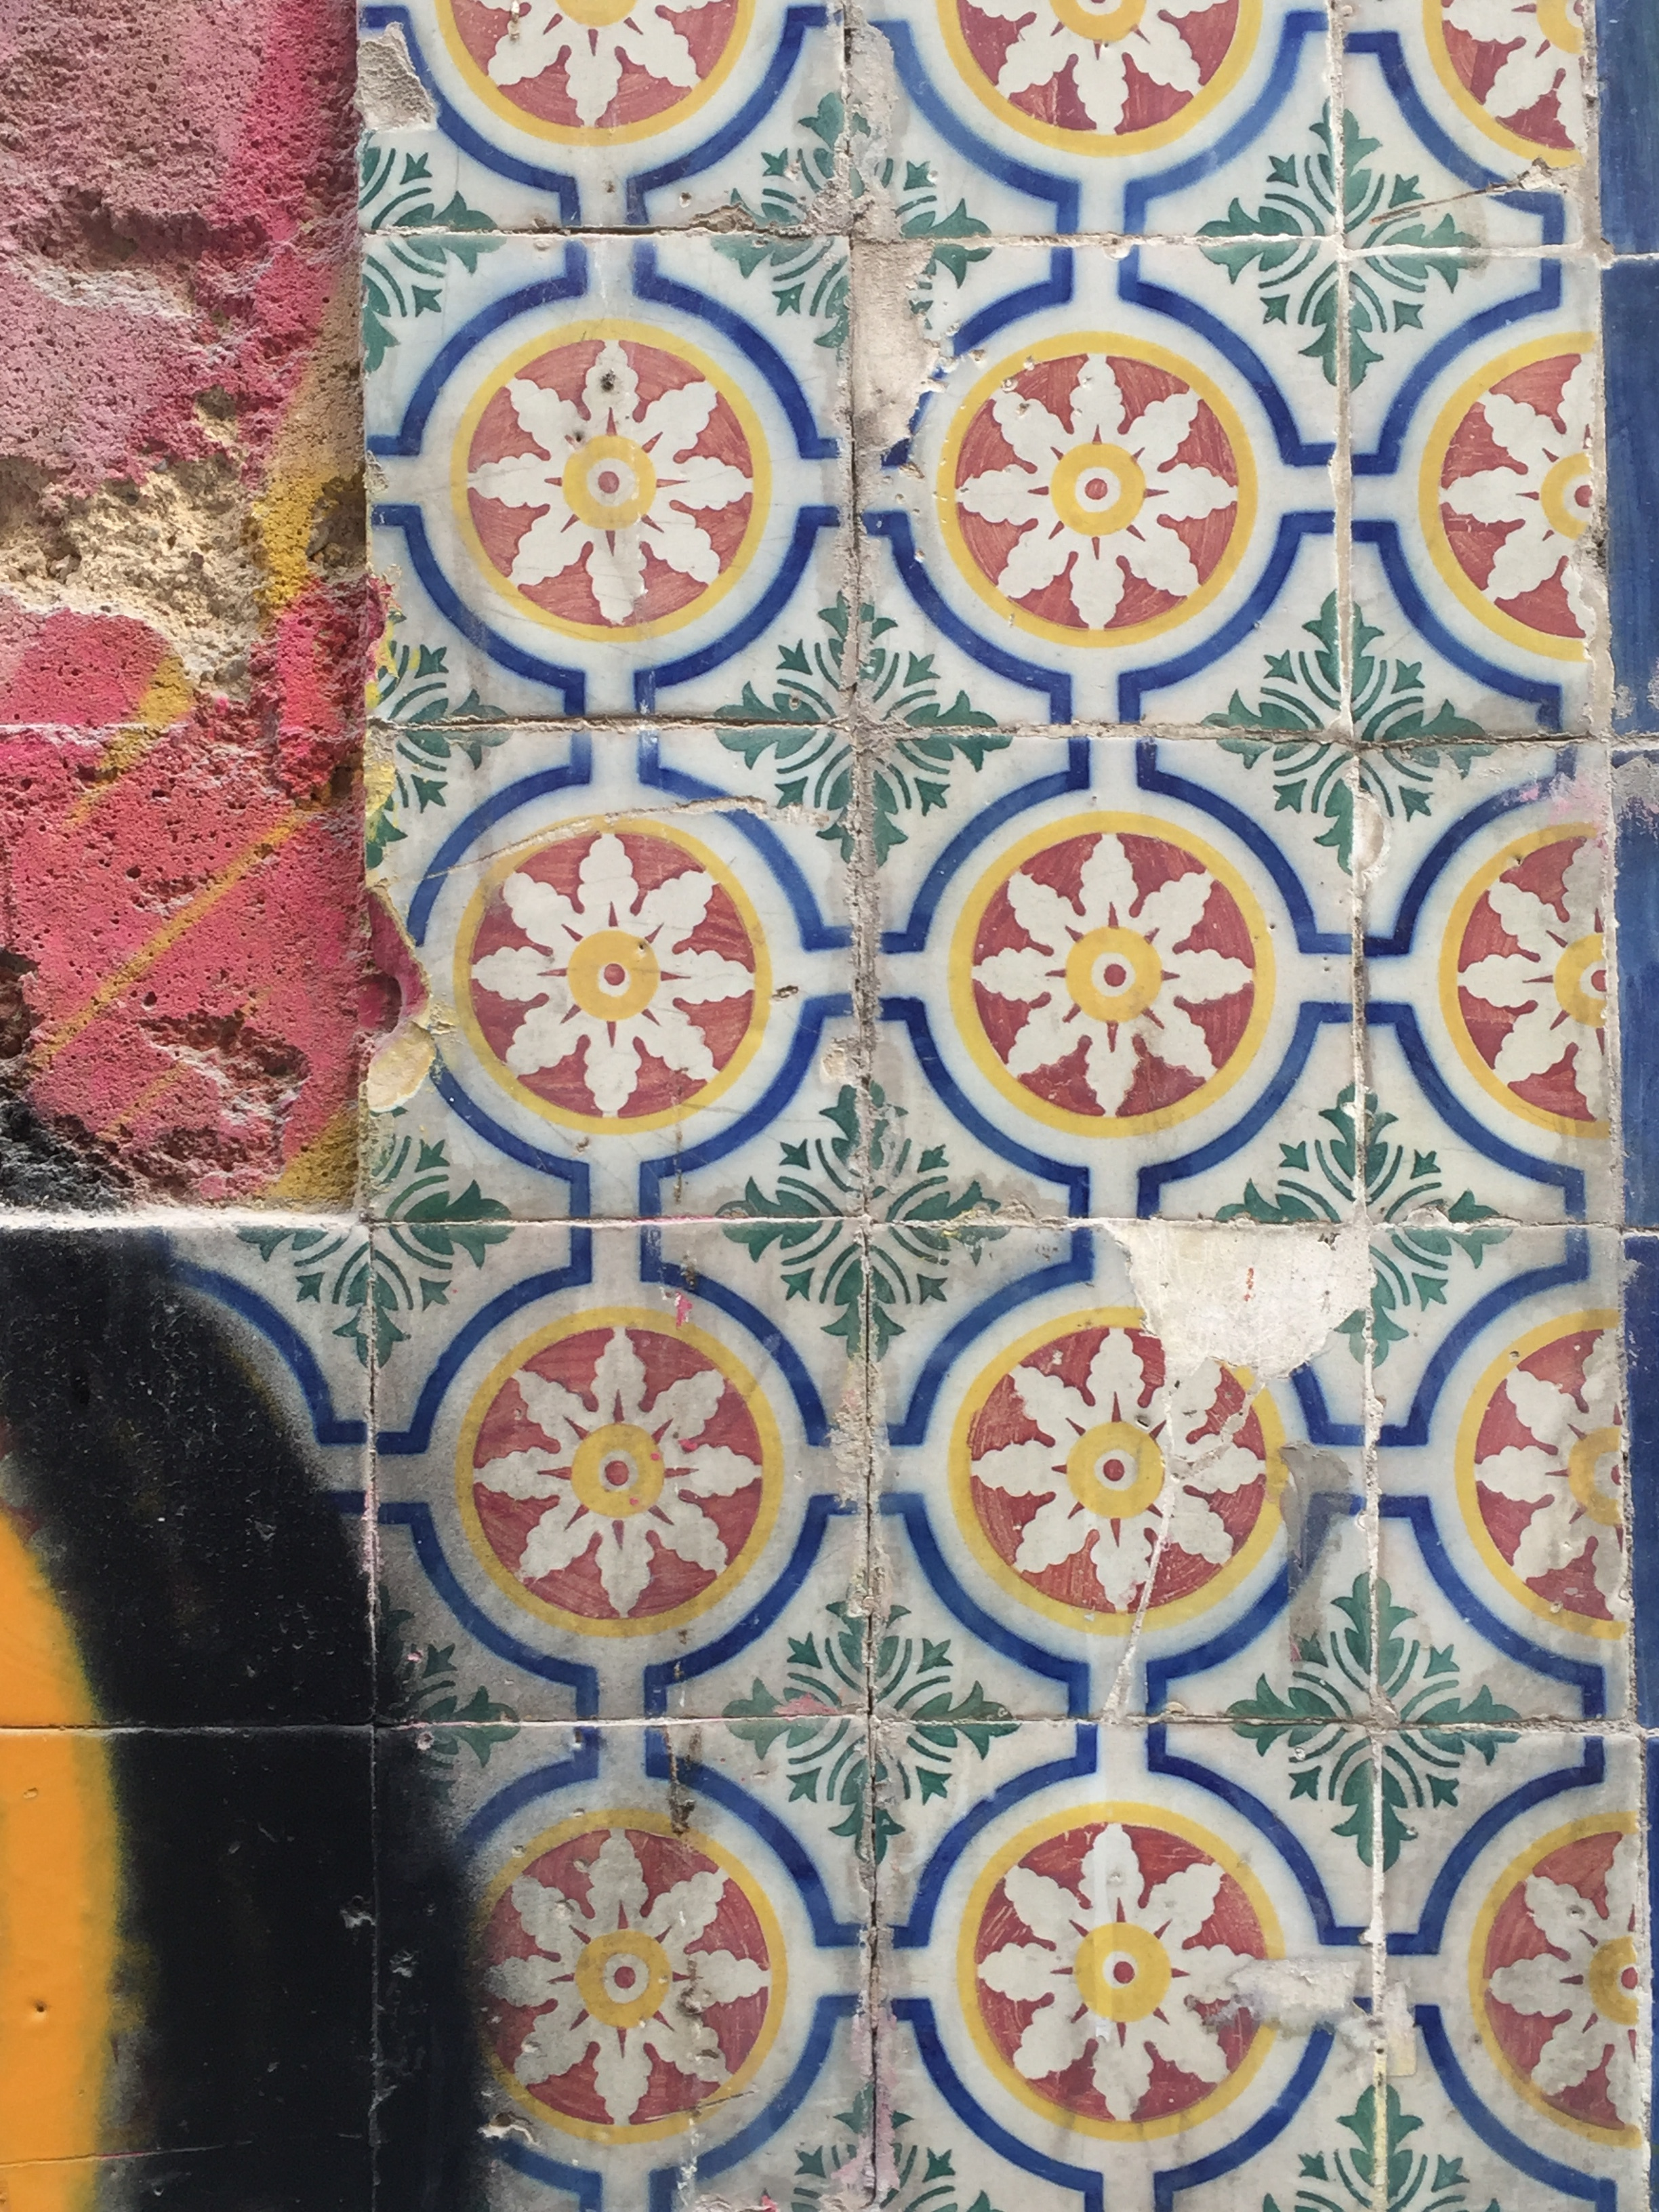 Azulejos Tiles in Lisbon Portugal